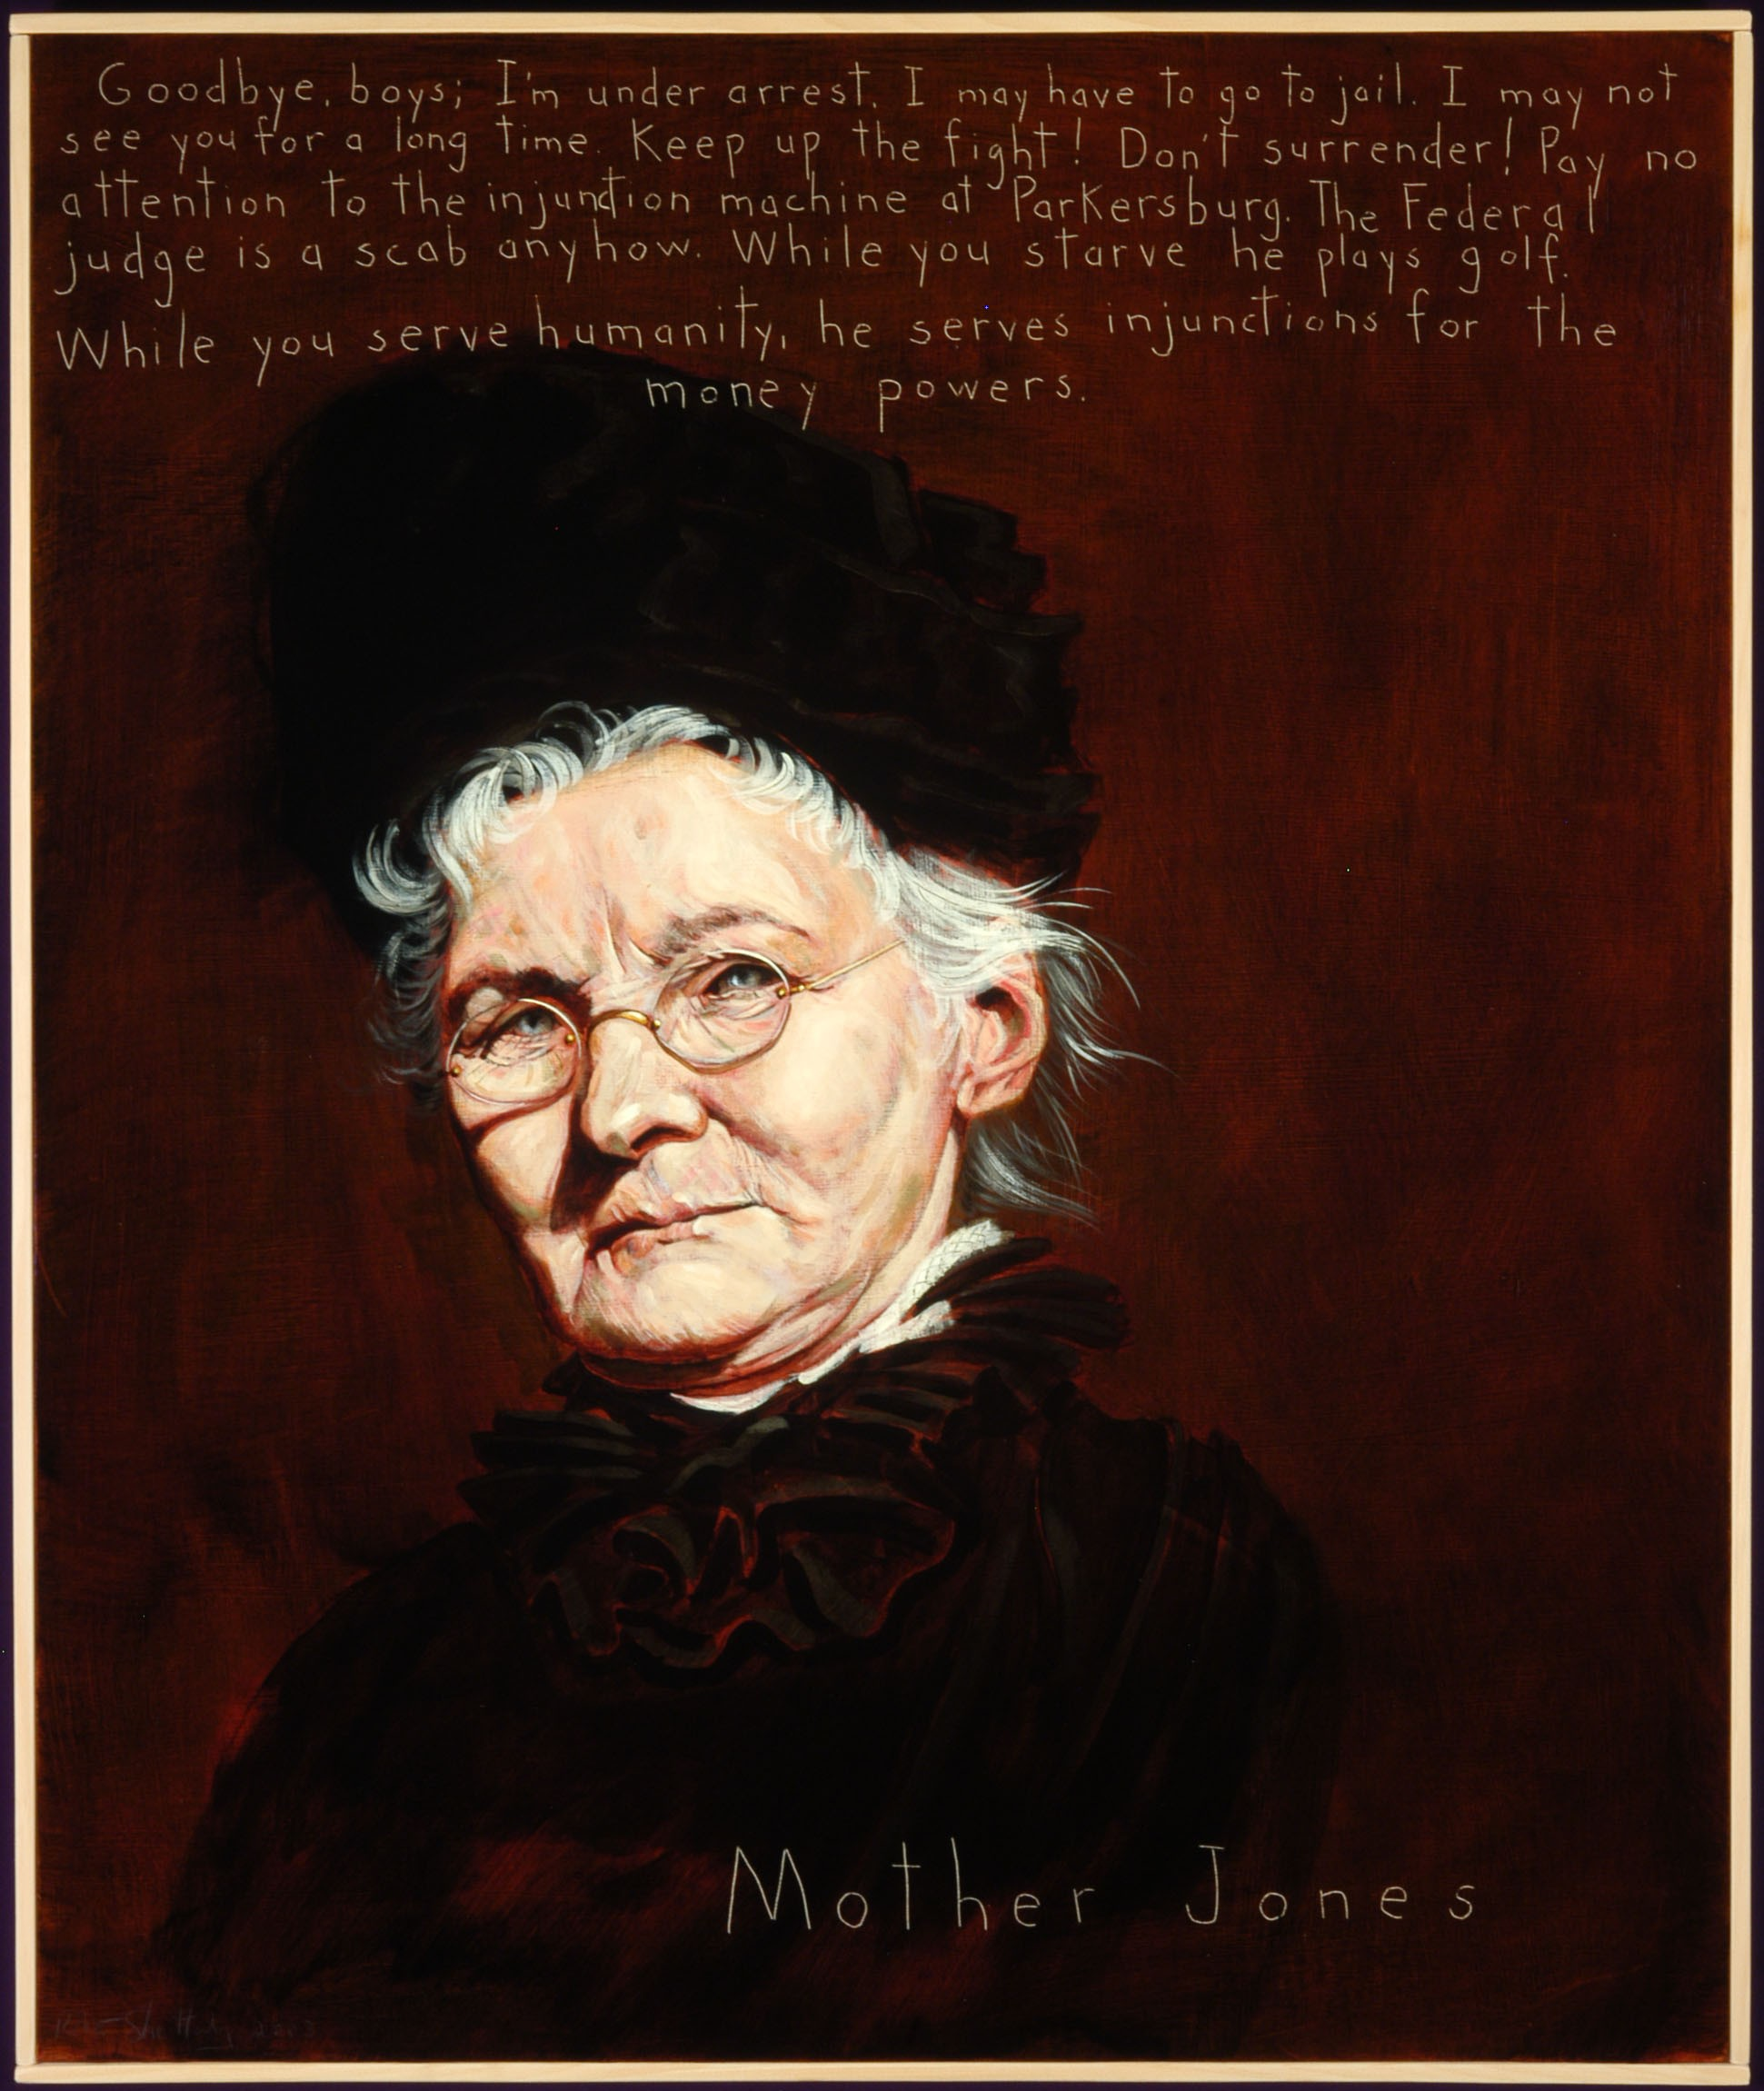 Picture of Mother Jones by Robert Shetterly, AWTT.org